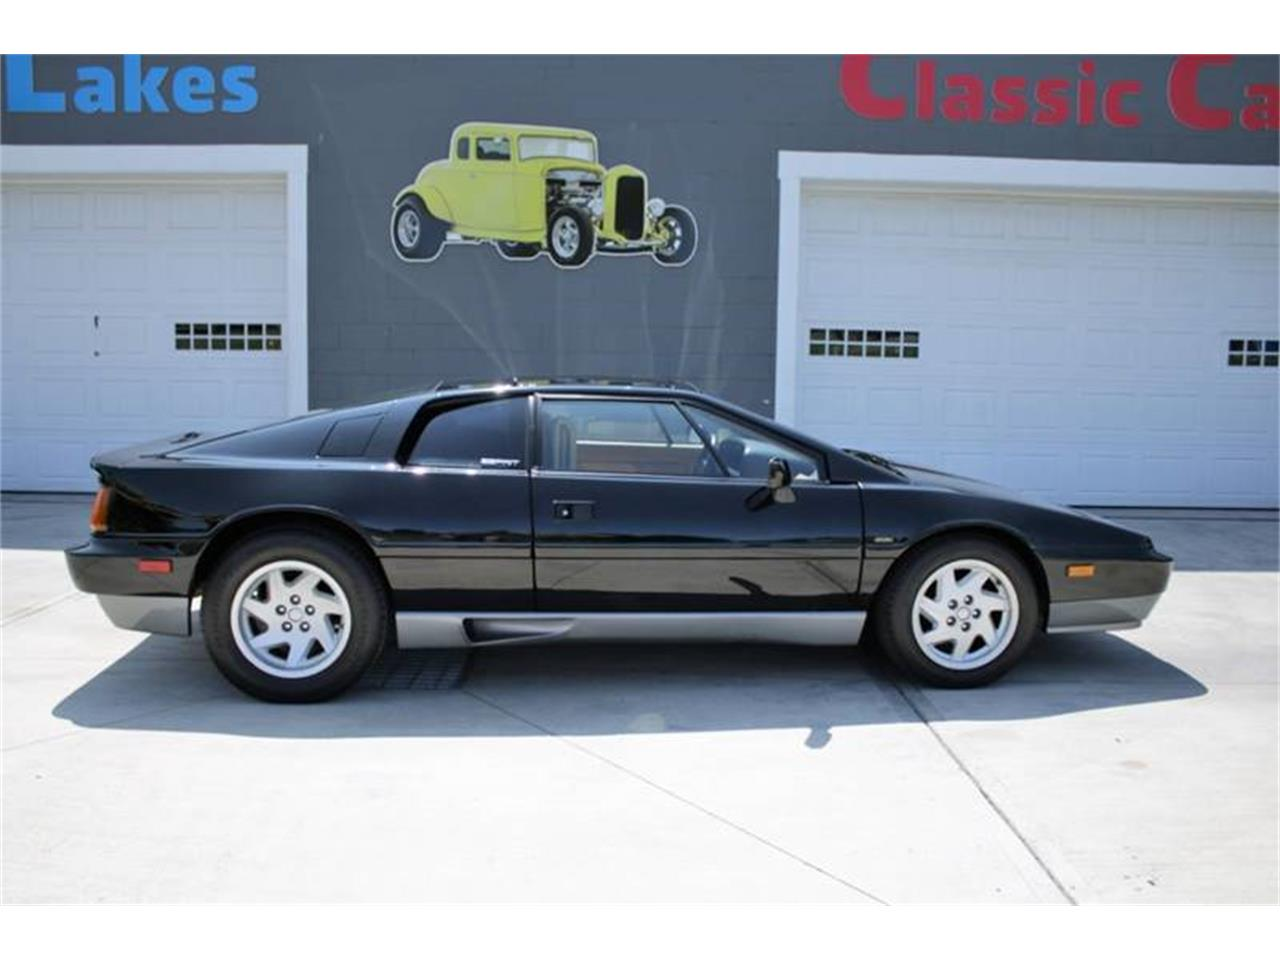 Large Picture of '88 Esprit located in Hilton New York - $26,495.00 Offered by Great Lakes Classic Cars - QE3Z